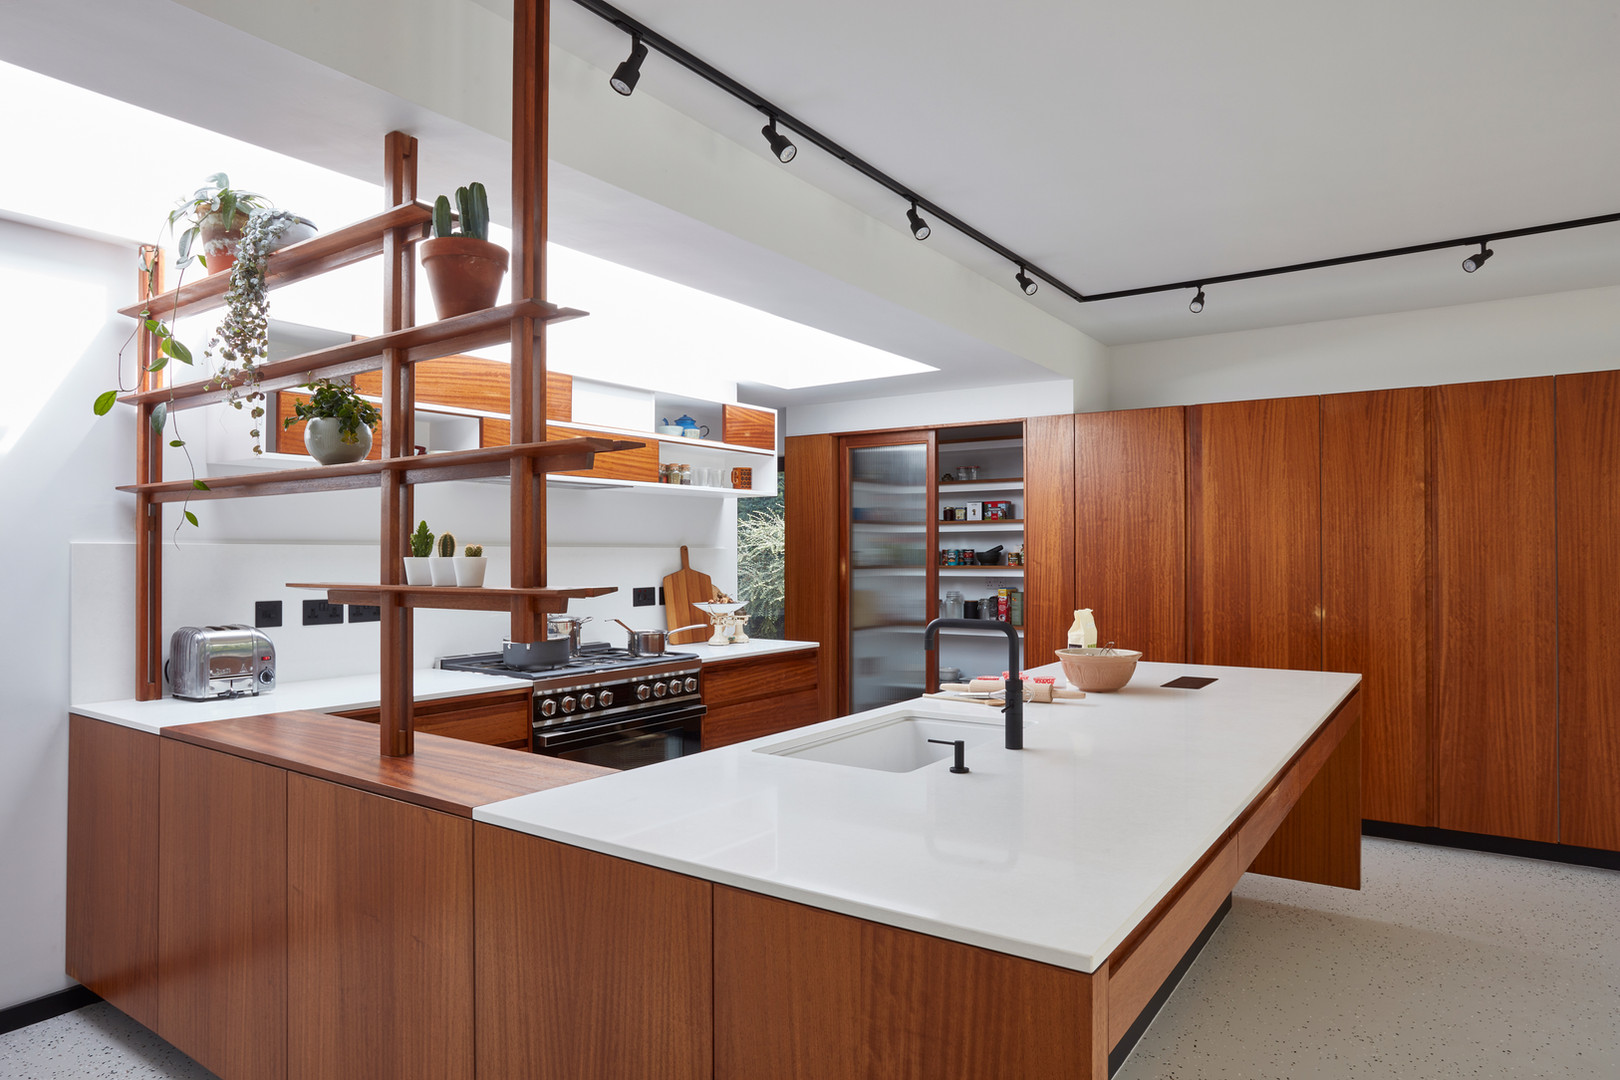 H Miller Bros | Luxury kitchen makers | handmade hardwood kitchens | Liverpool, Manchester, Cheshire, and Wirral